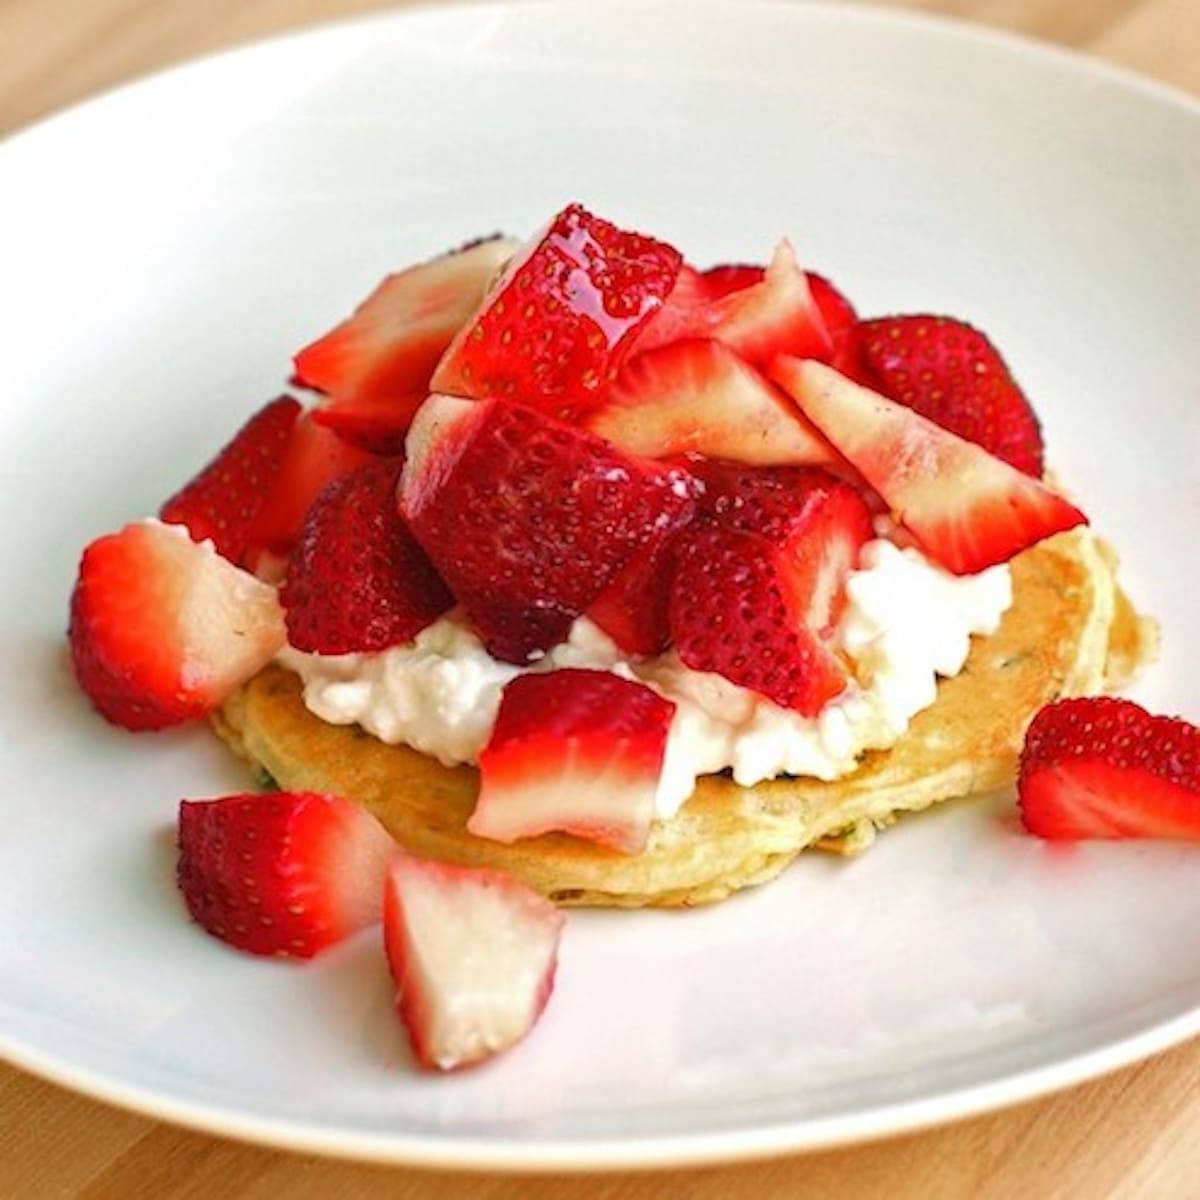 Zucchini pancakes with strawberries and whipped cream.